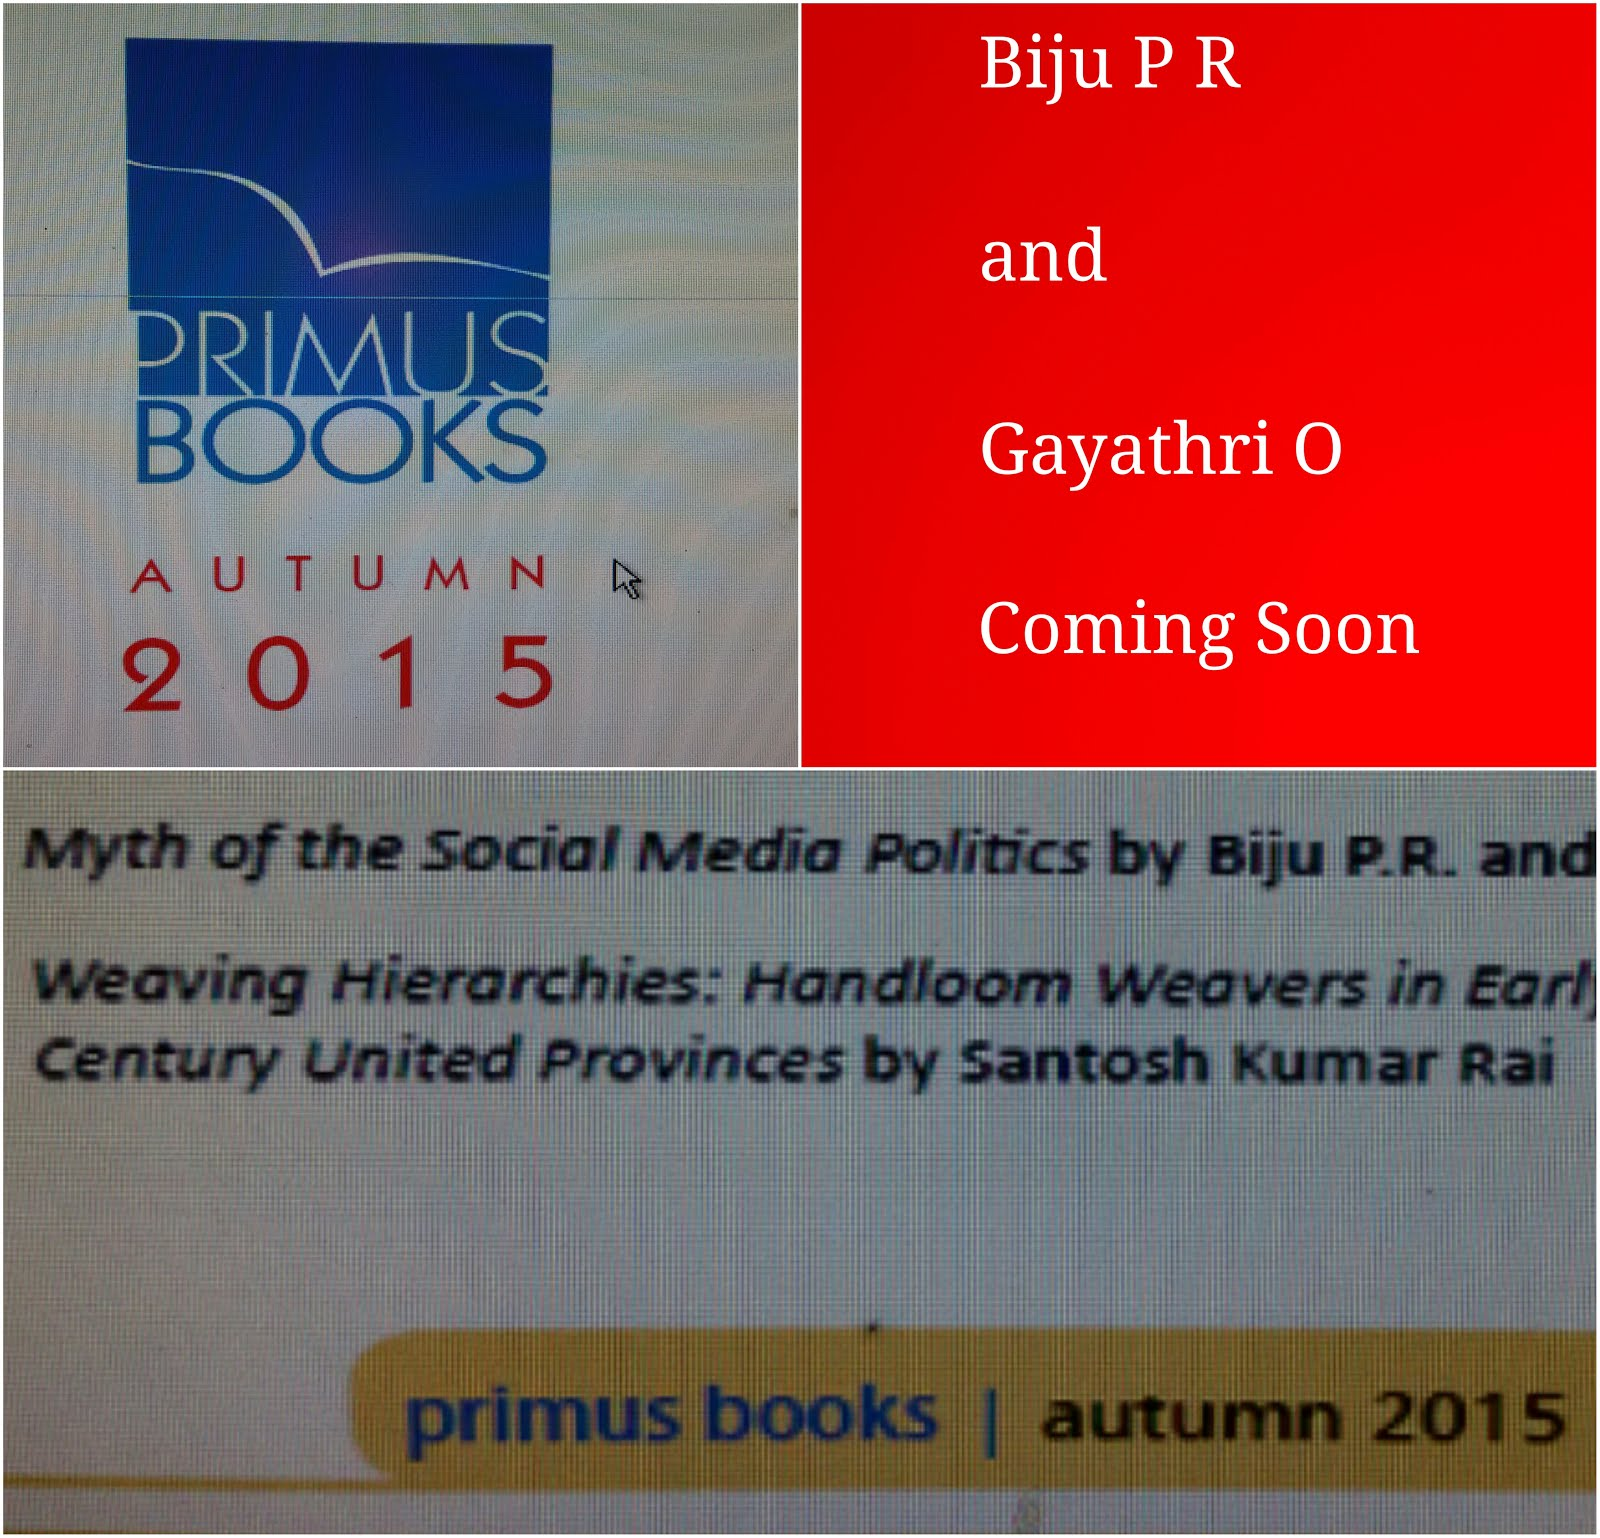 Myth of the Social Media Politics (Forthcoming book by Biju P R and Gayathri O) From Primus Books